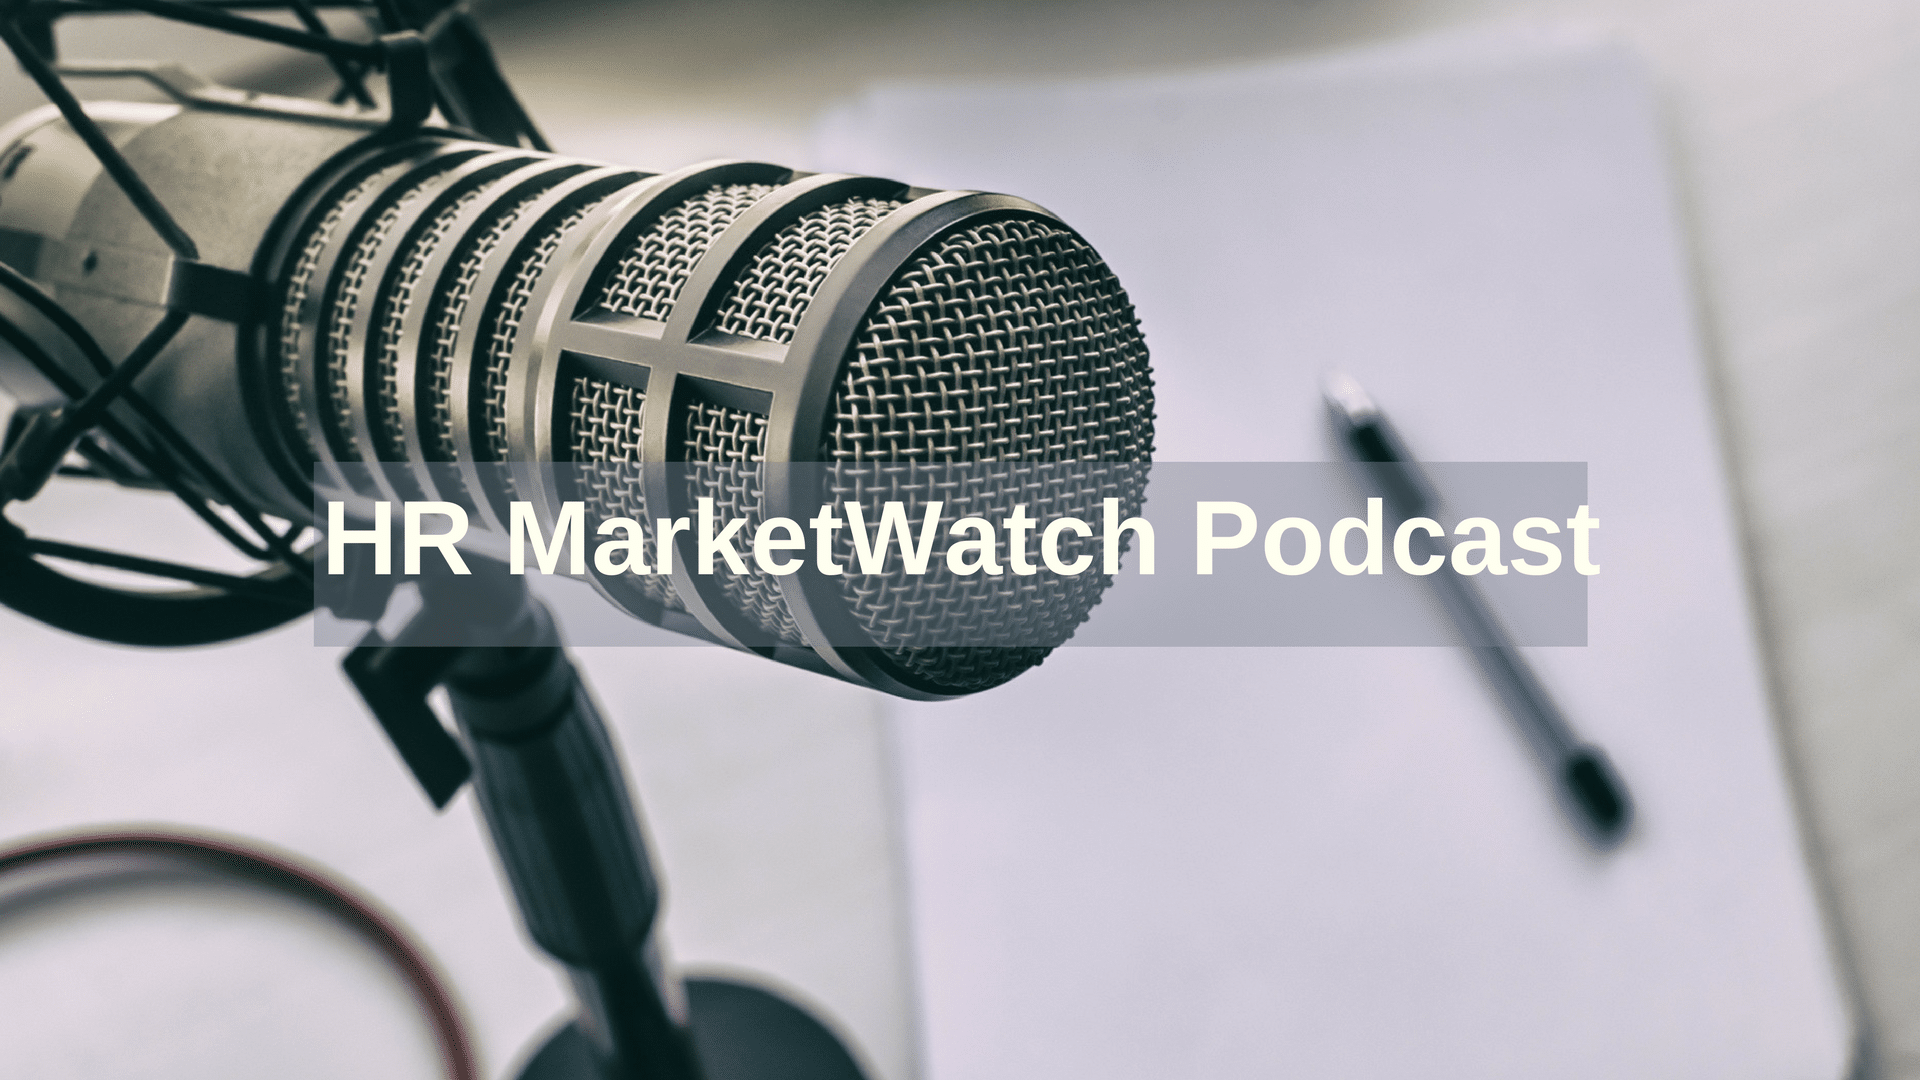 HR MarketWatch Podcast: Let's Get Real About Employee Engagement